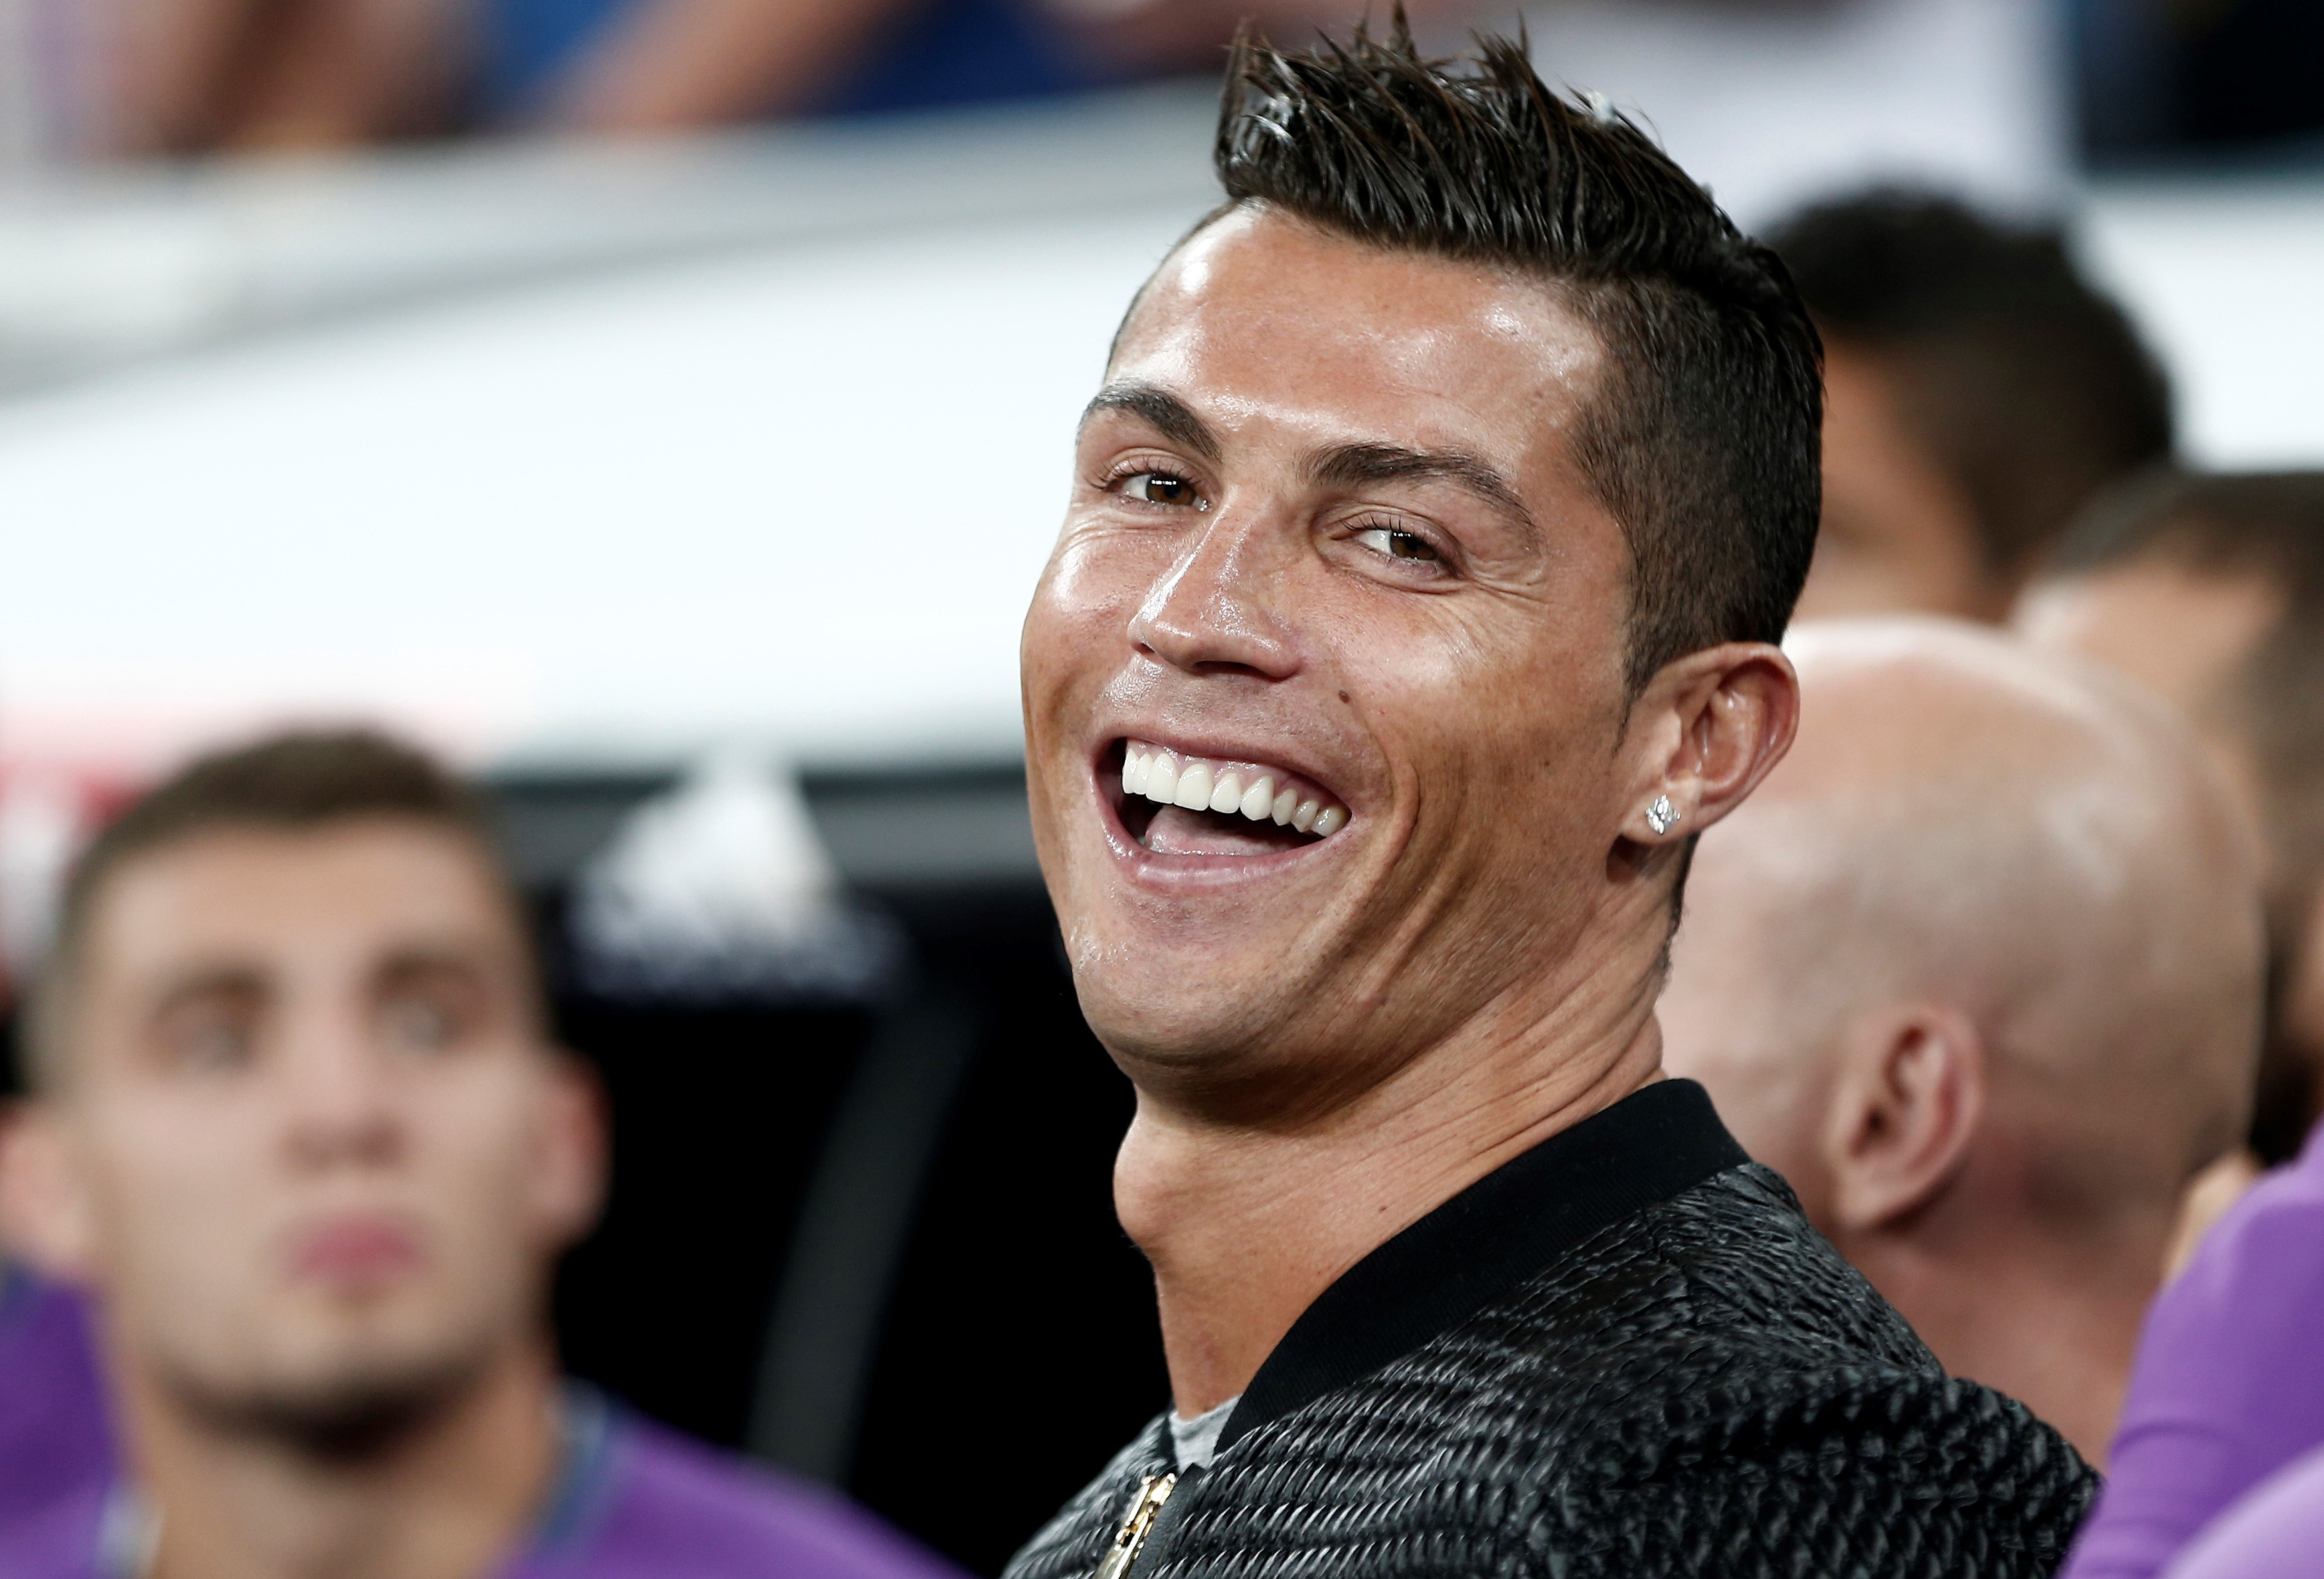 Revealed: Cristiano Ronaldo manages to top Olympic moments on Facebook